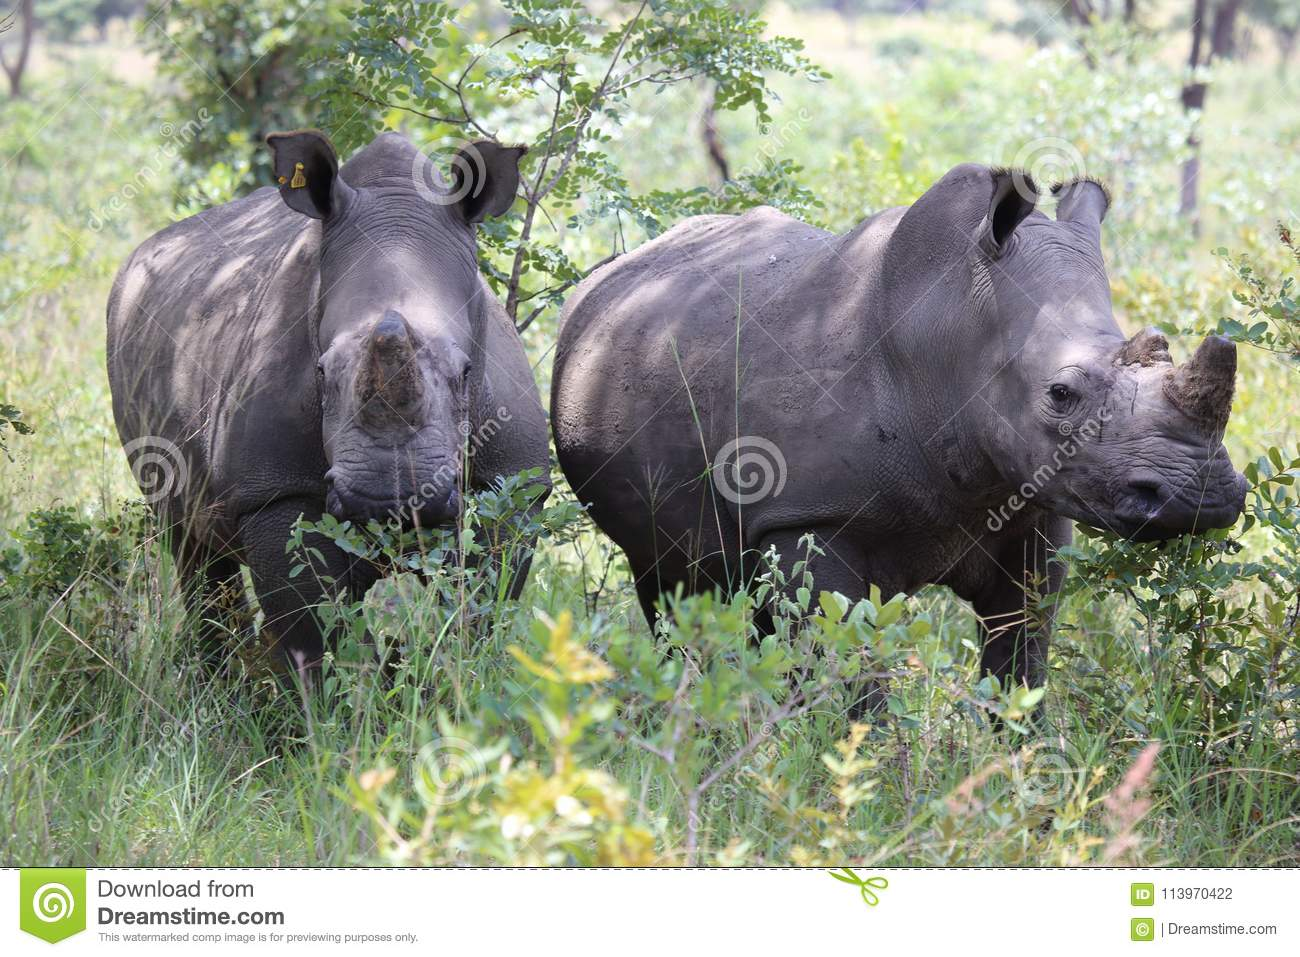 White Rhinos in Zimbabwe, Hwange National Park